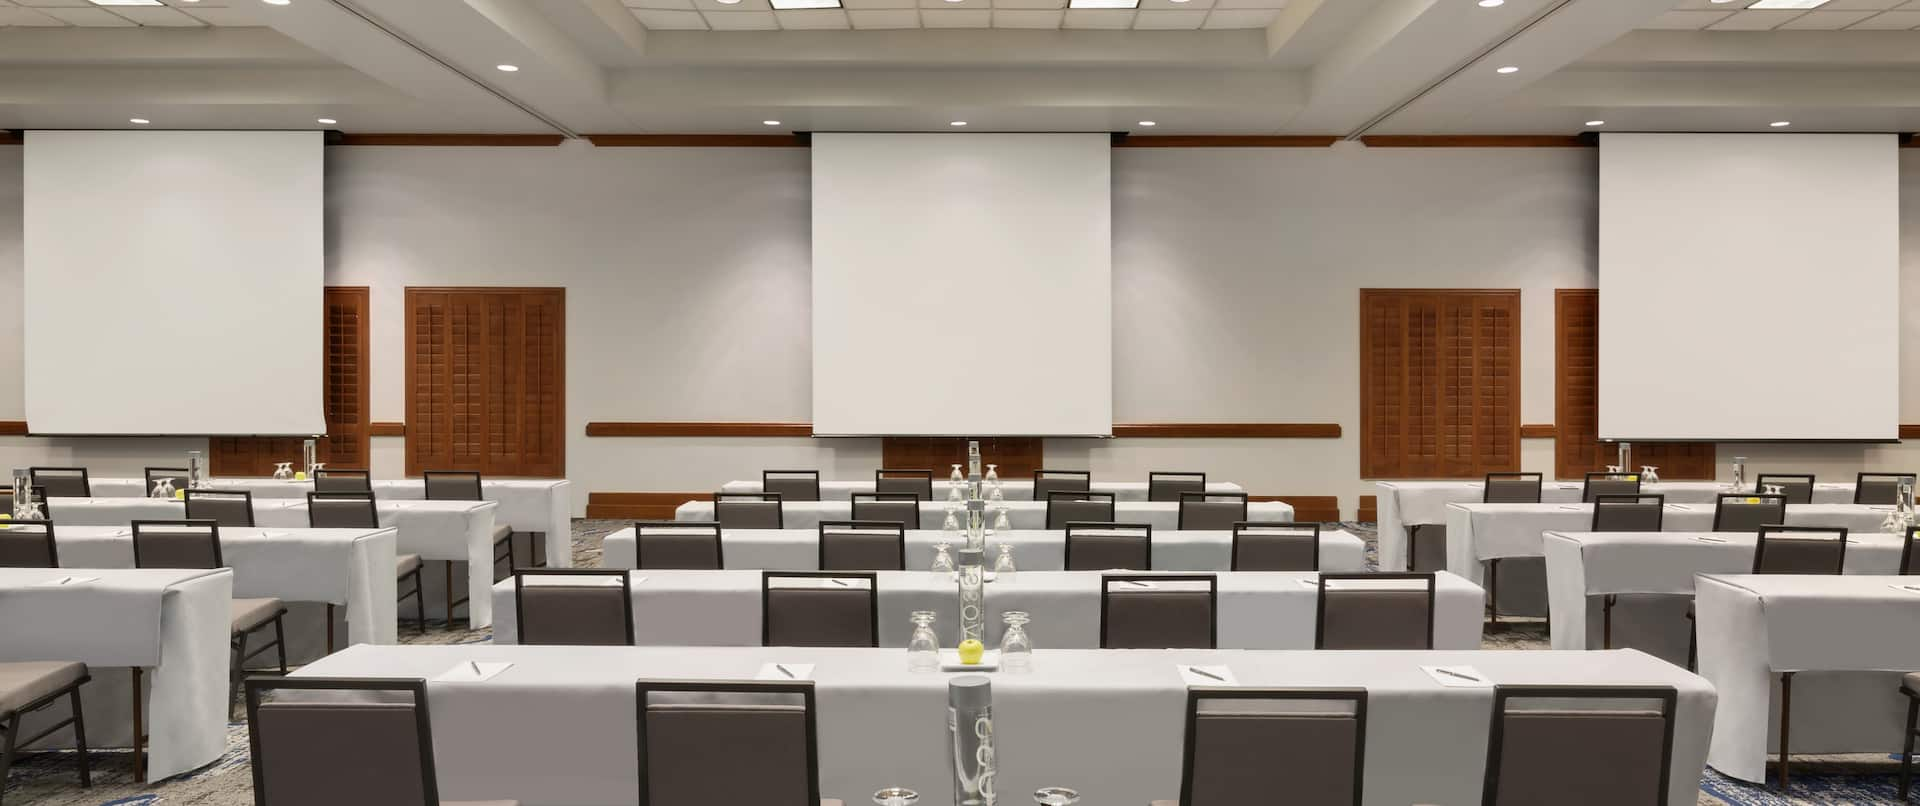 Embassy Suites Dallas - DFW Airport North Outdoor World Hotel, TX - Cross Timbers Classroom